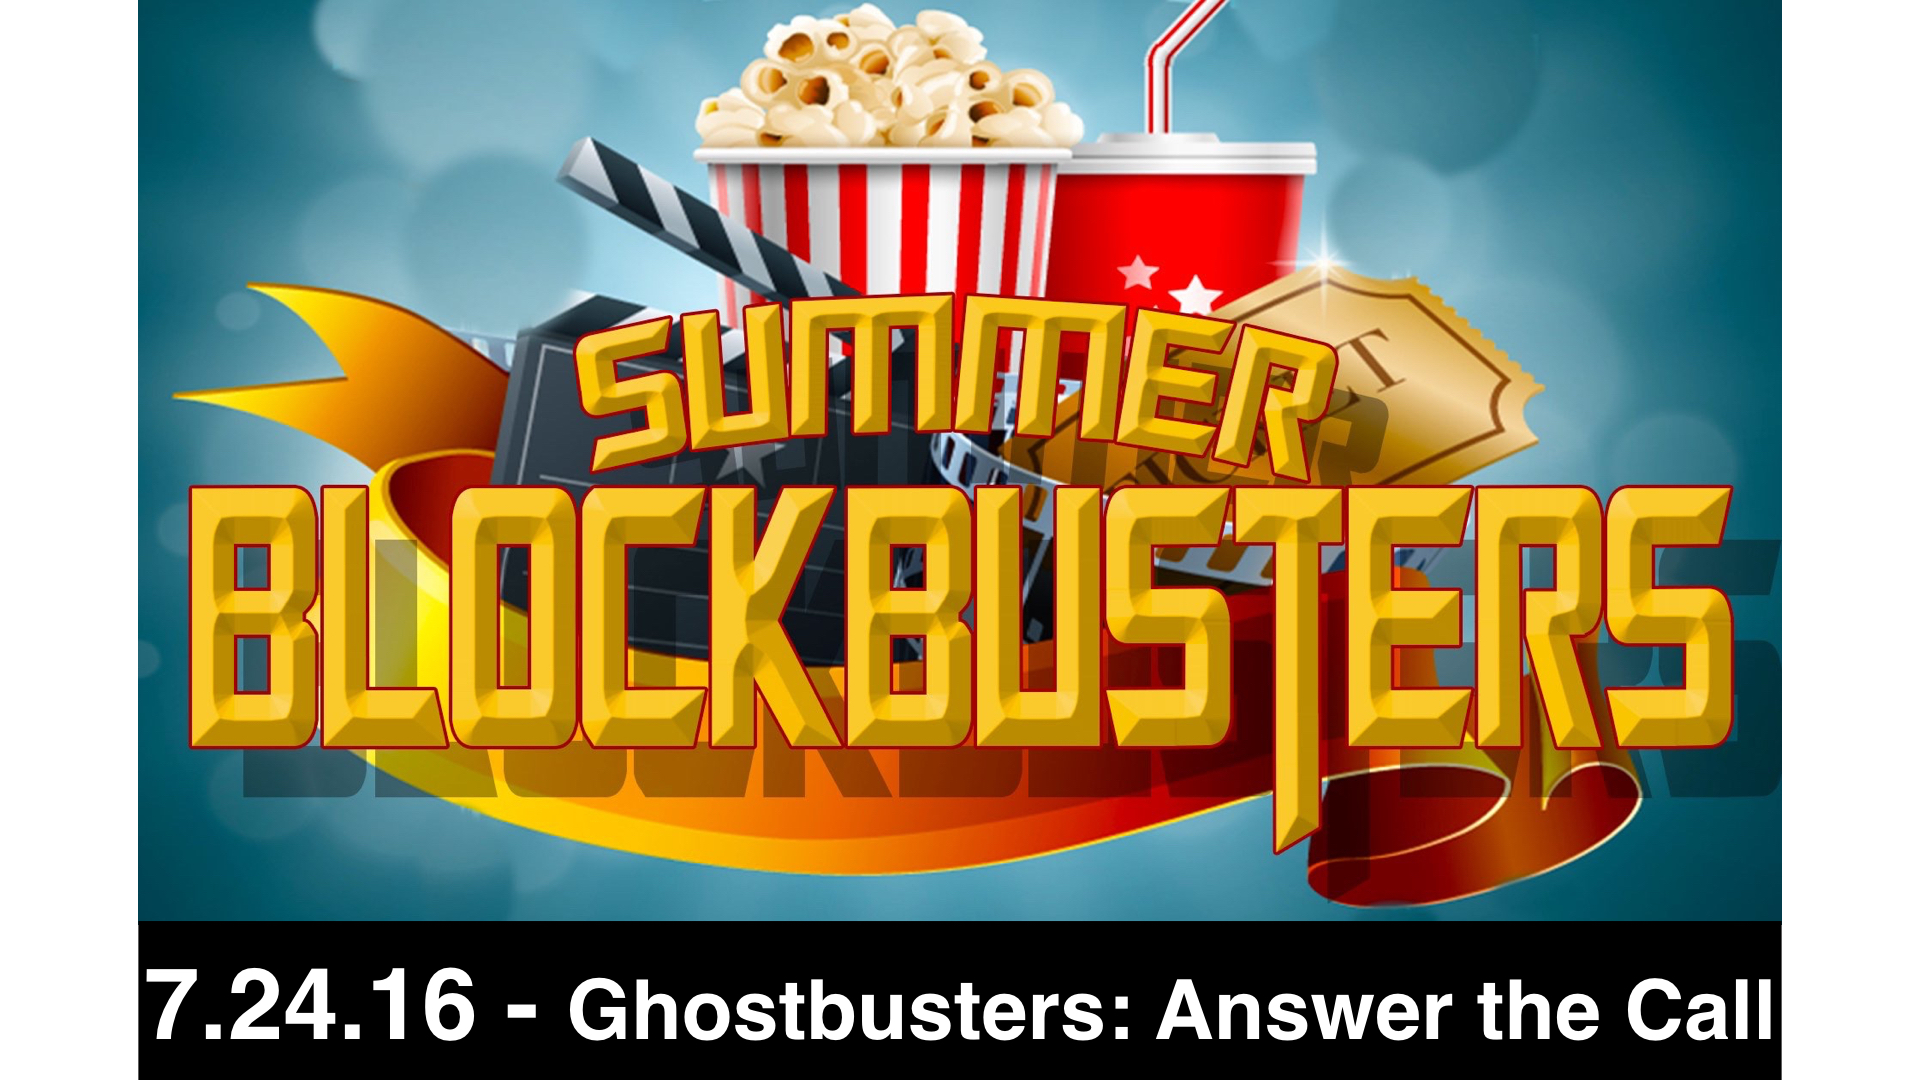 7.24.16-Ghostbusters: Answer the Call